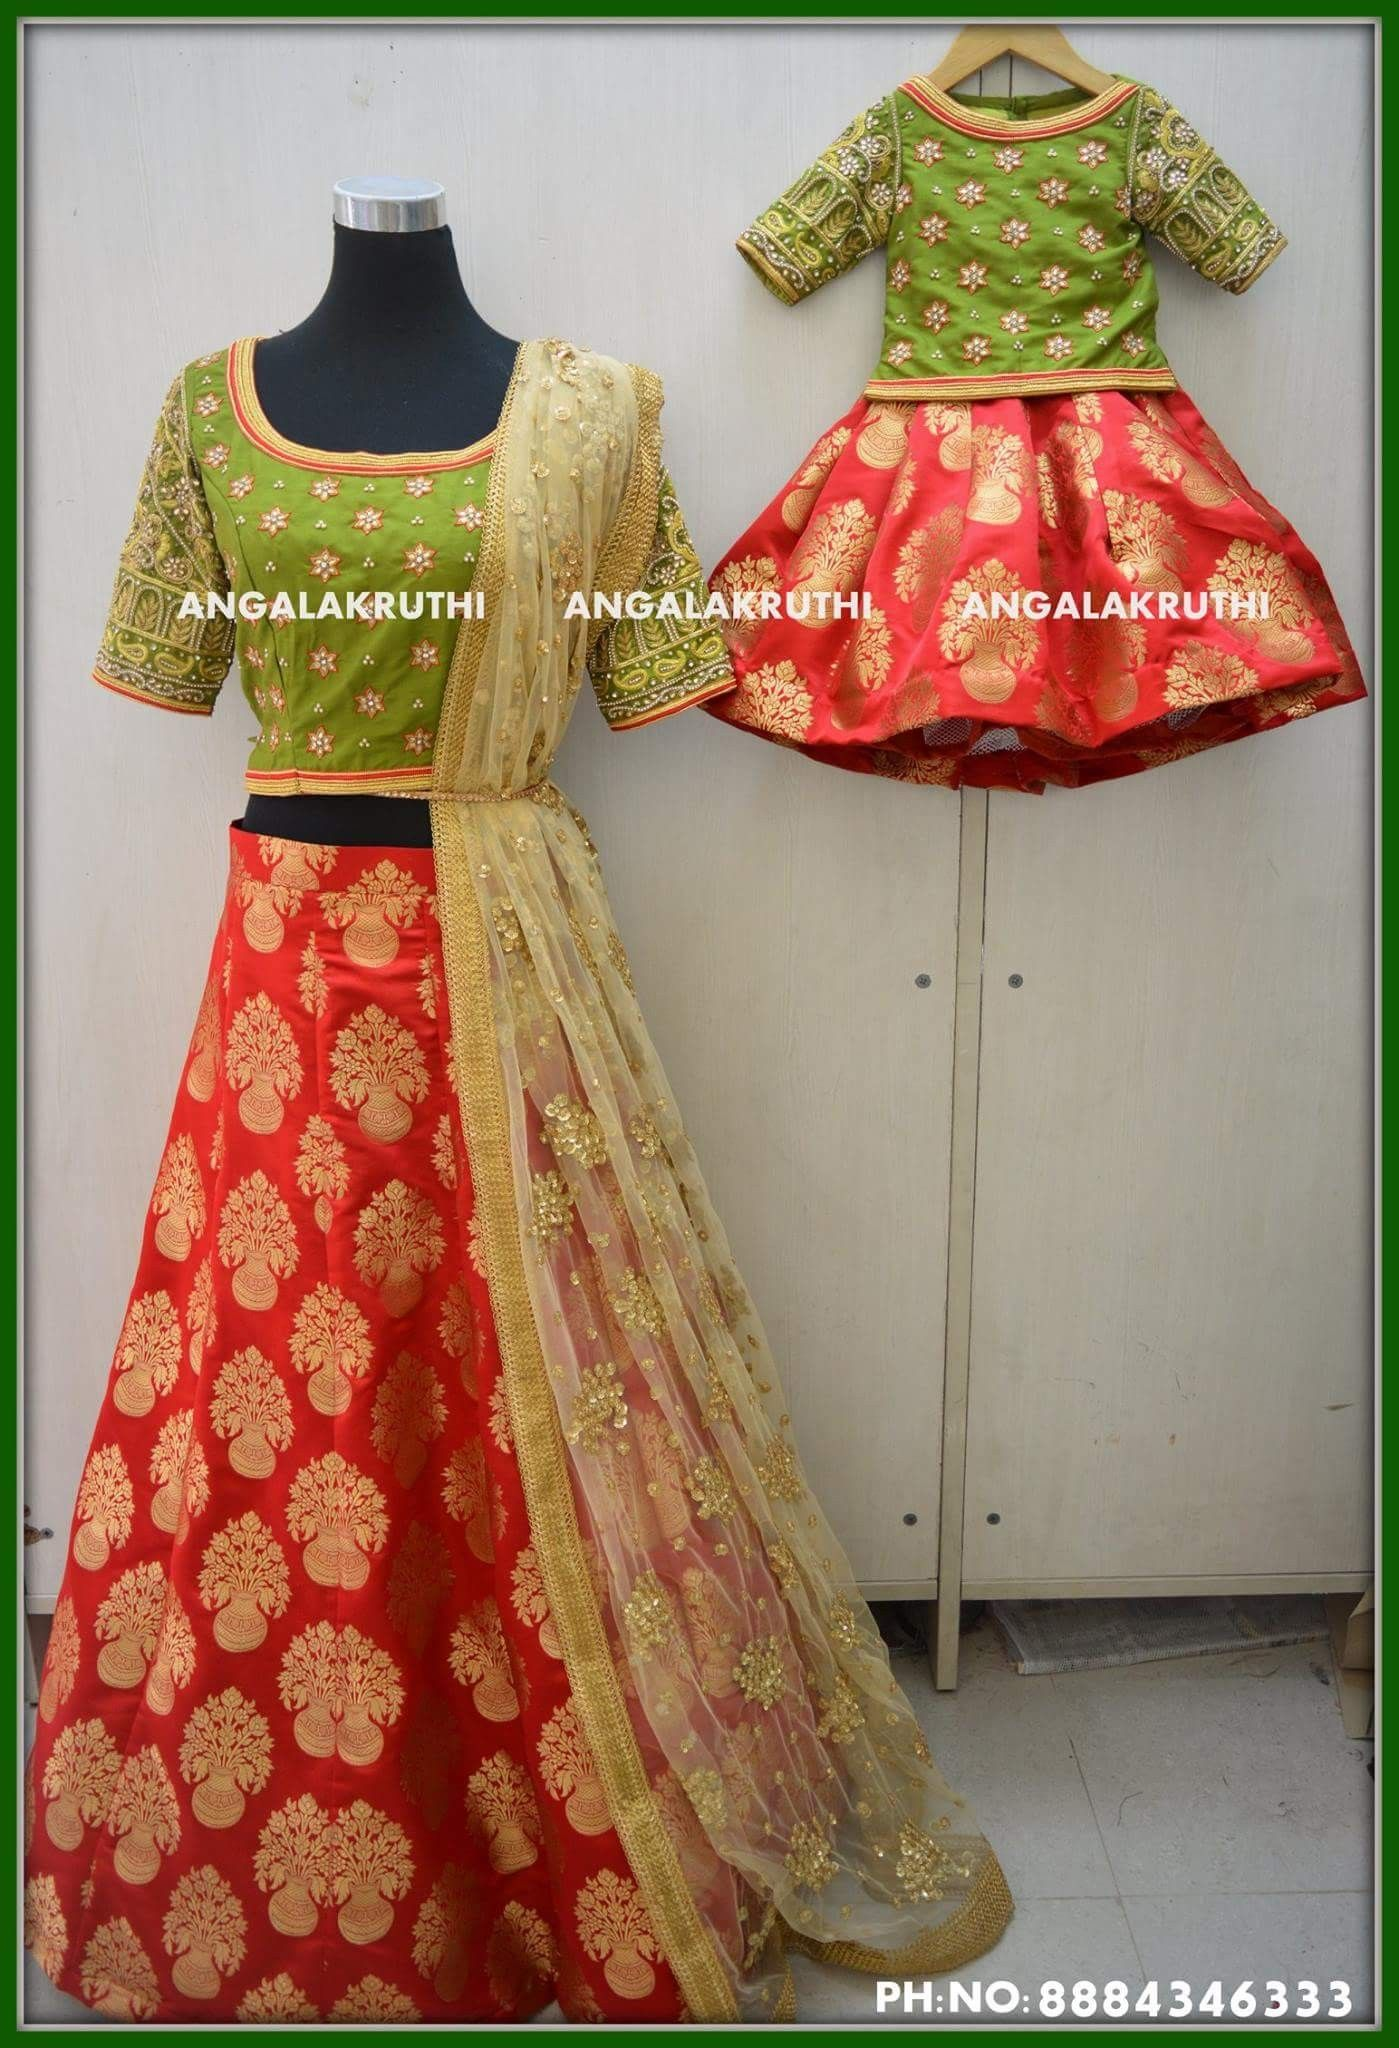 fe519433be  Matching dress designs by Angalakruthi boutique Bangalore  Watsapp 8884346333 Rich hand embroidery designs for